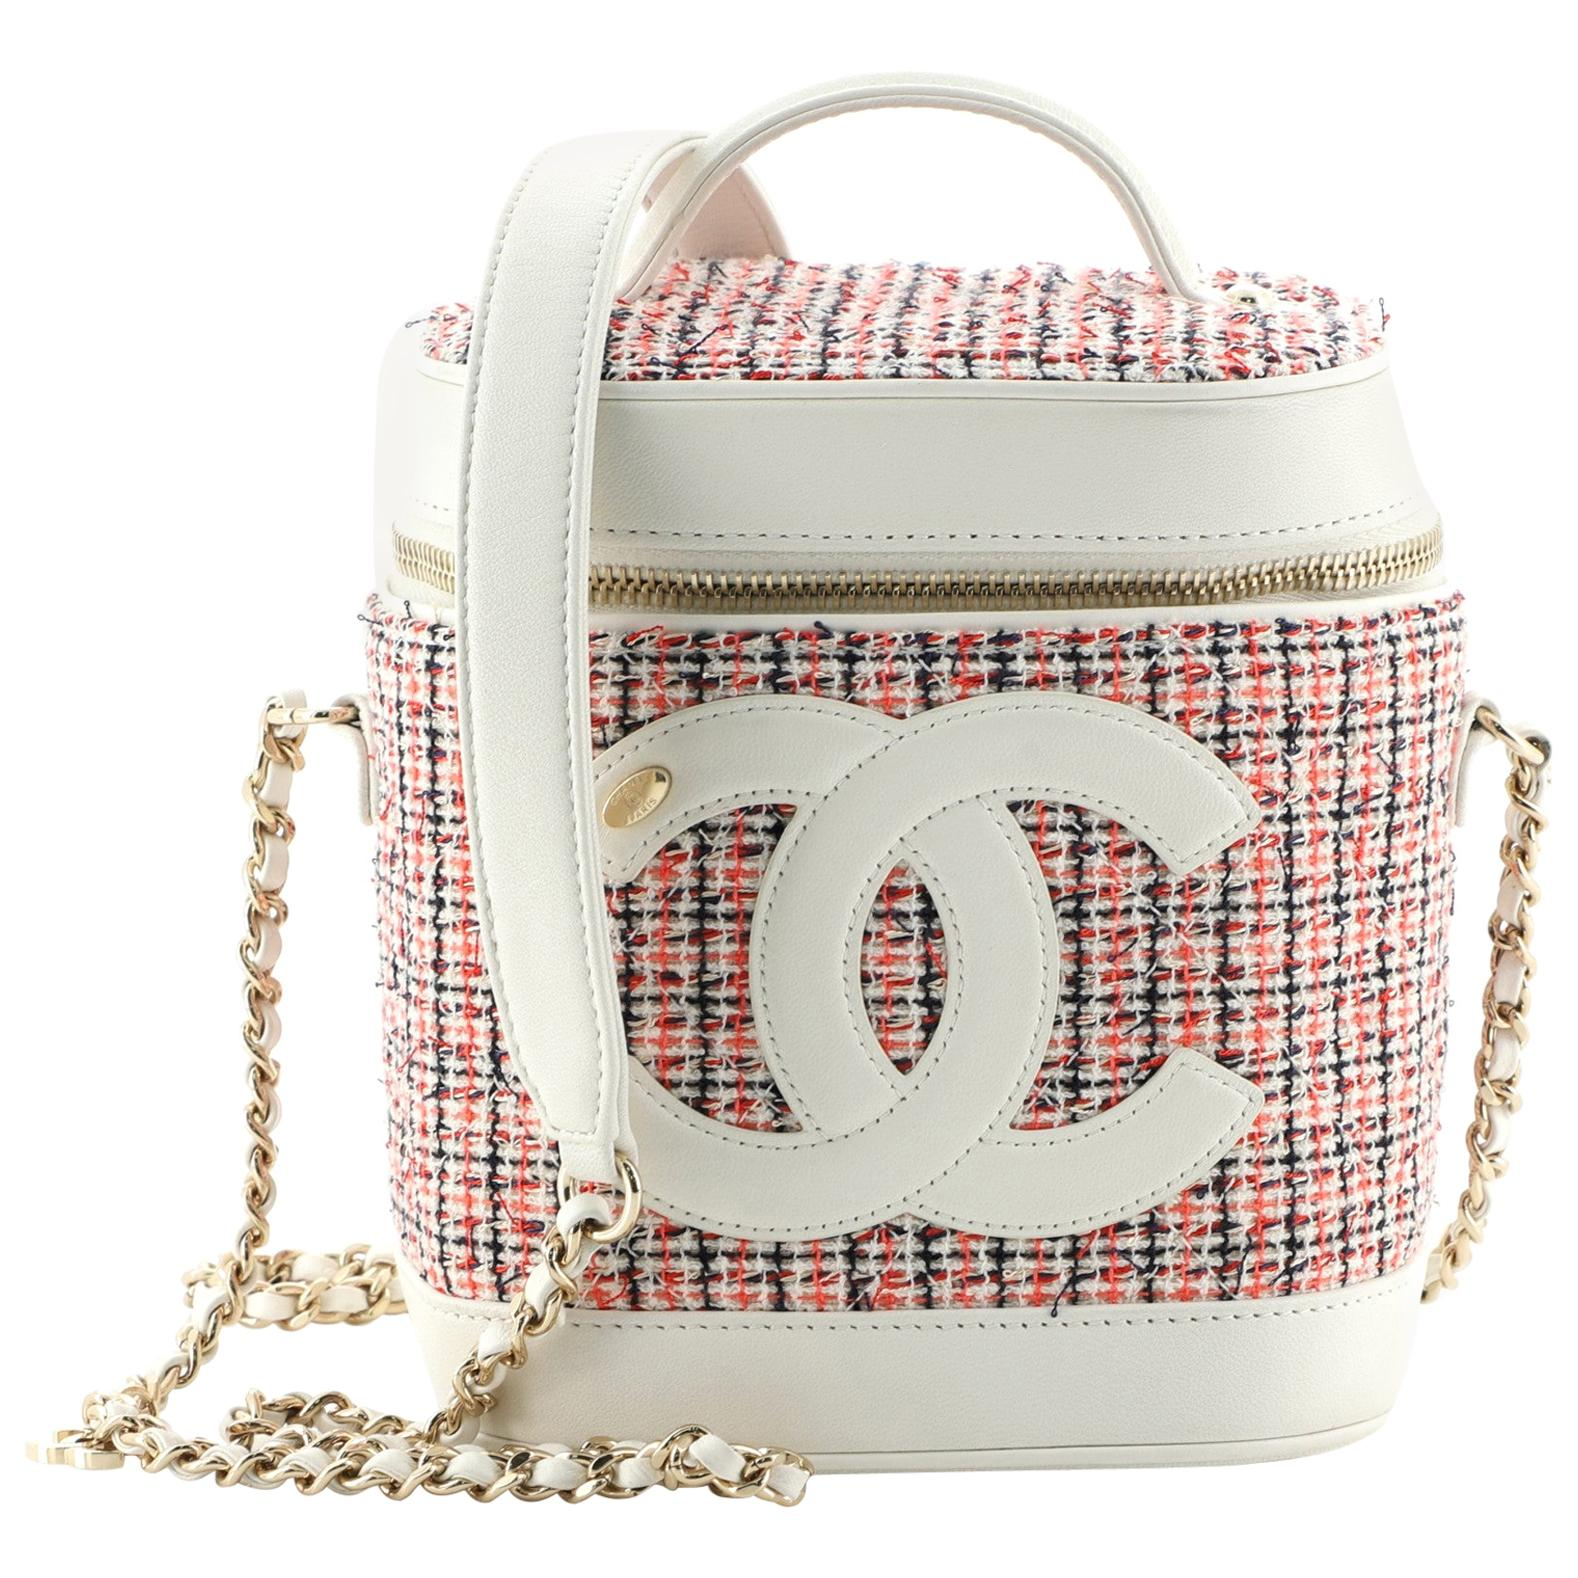 Chanel CC Mania Vanity Case Tweed with Lambskin